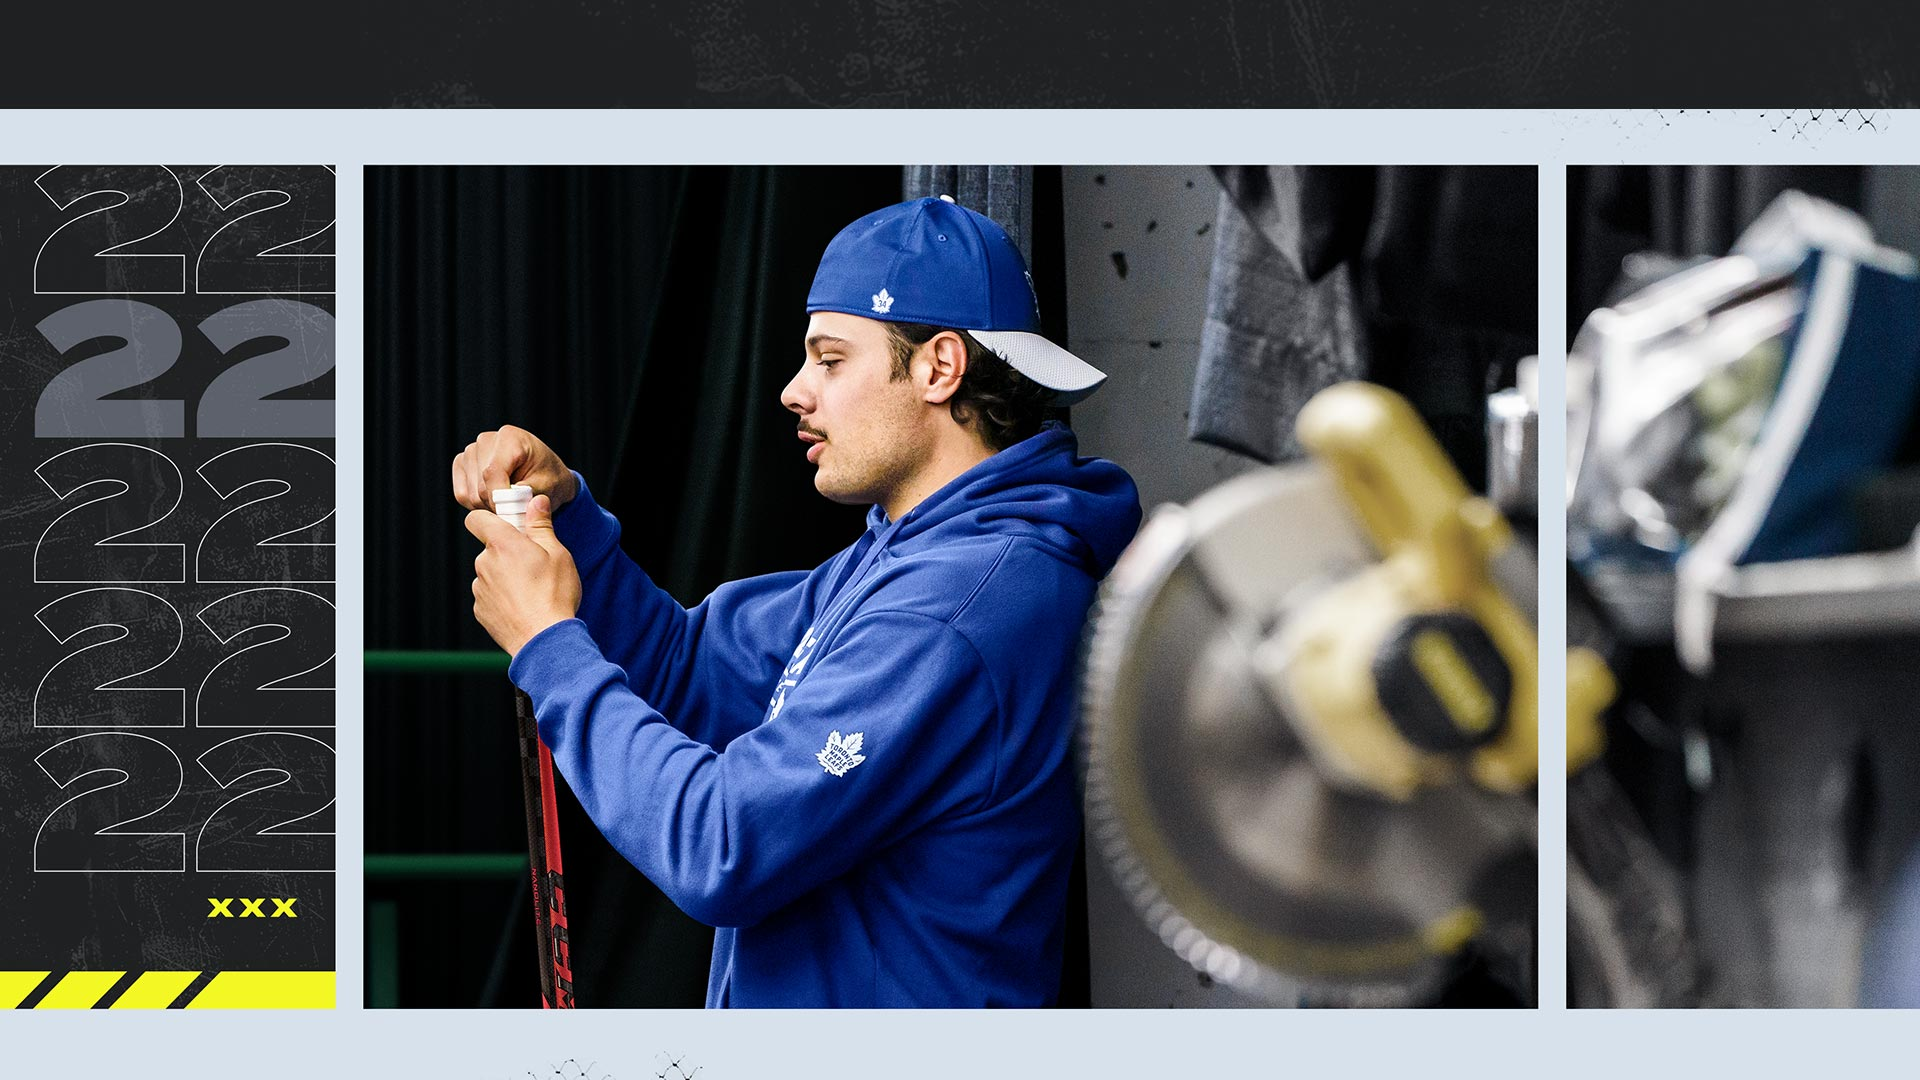 Auston Taylour Matthews surrounded by NHL 22 themed art regripping hockey stick.